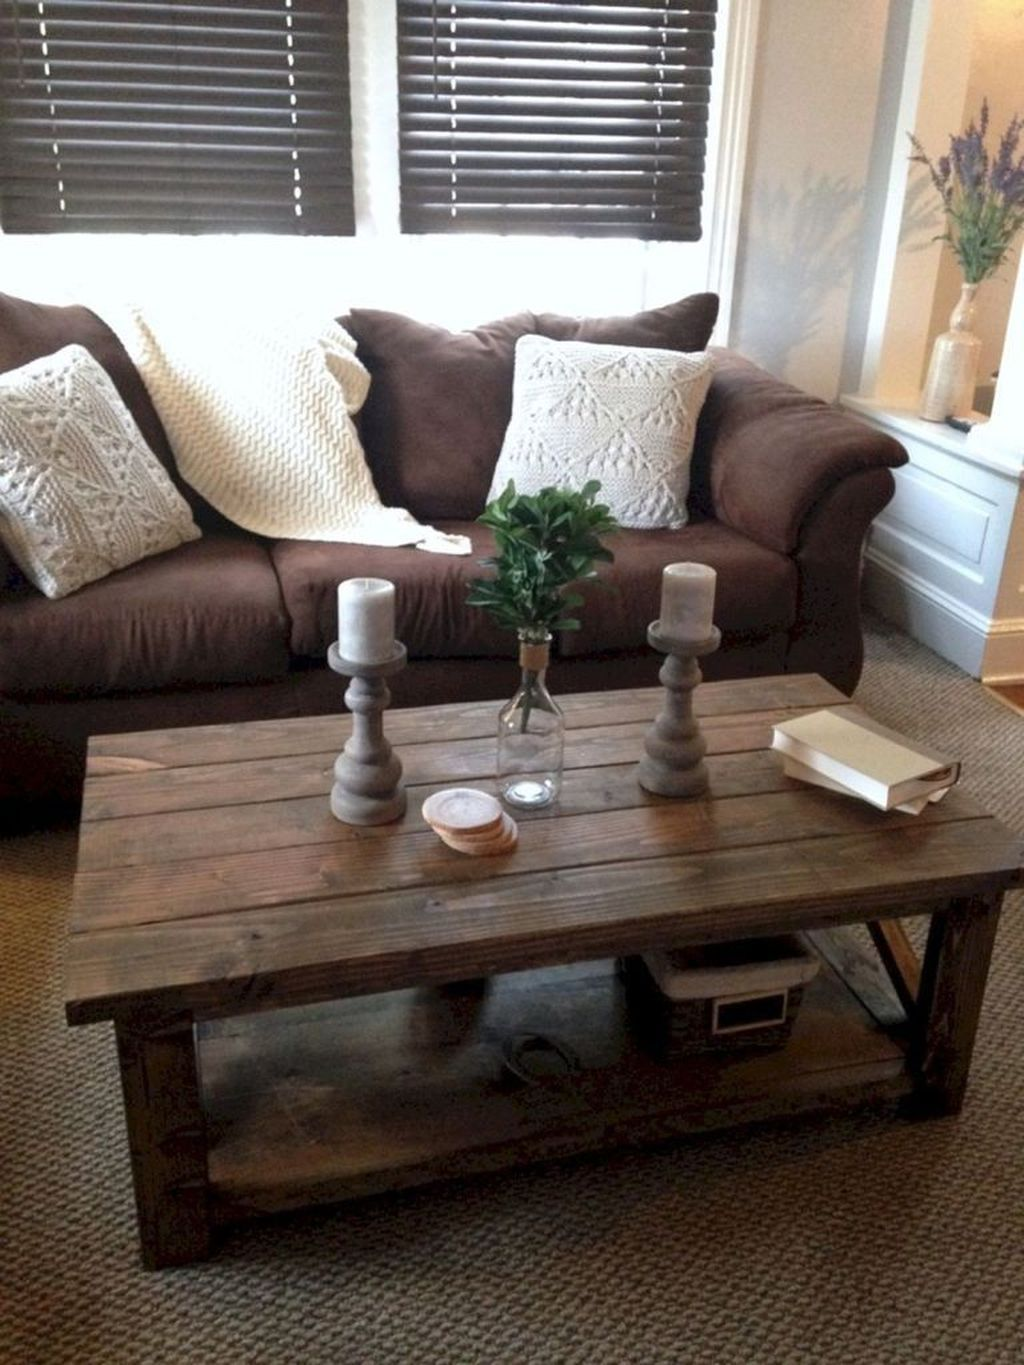 59 Simple DIY Coffe Table Decor Ideas (With images ...